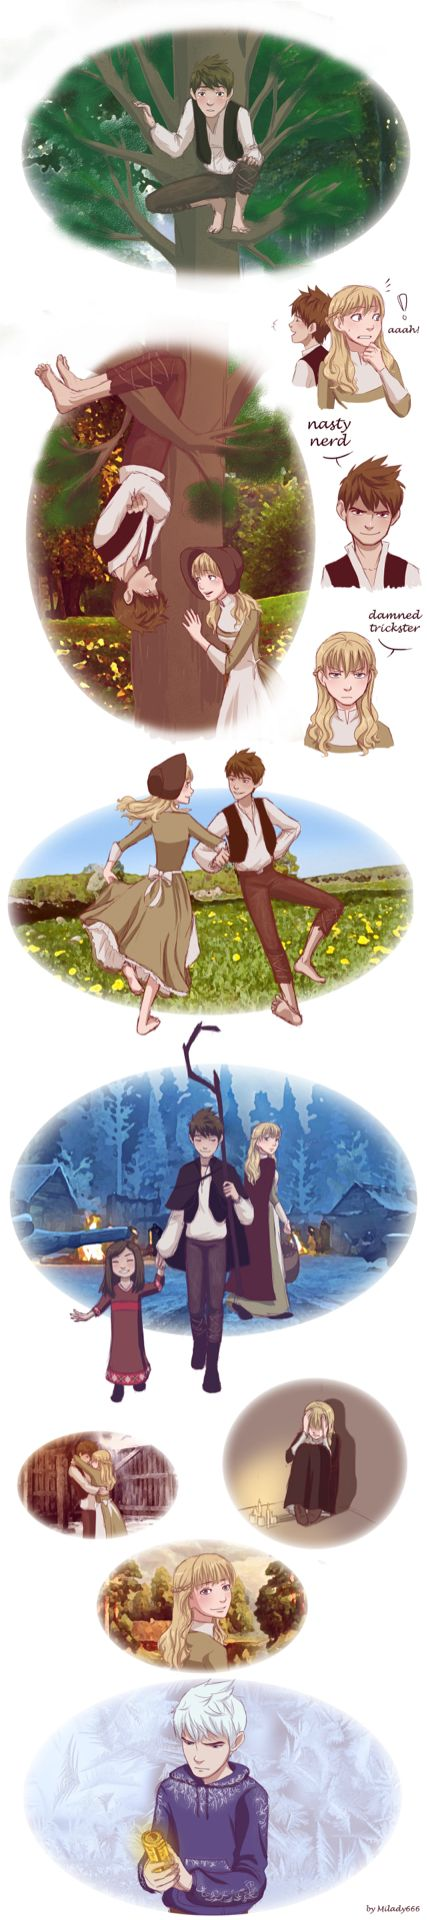 Night light x jack frost - Jack S Fan Made Memory Of A Girl He Liked In Colonial Times Jack Frost Rise Of The Guardians